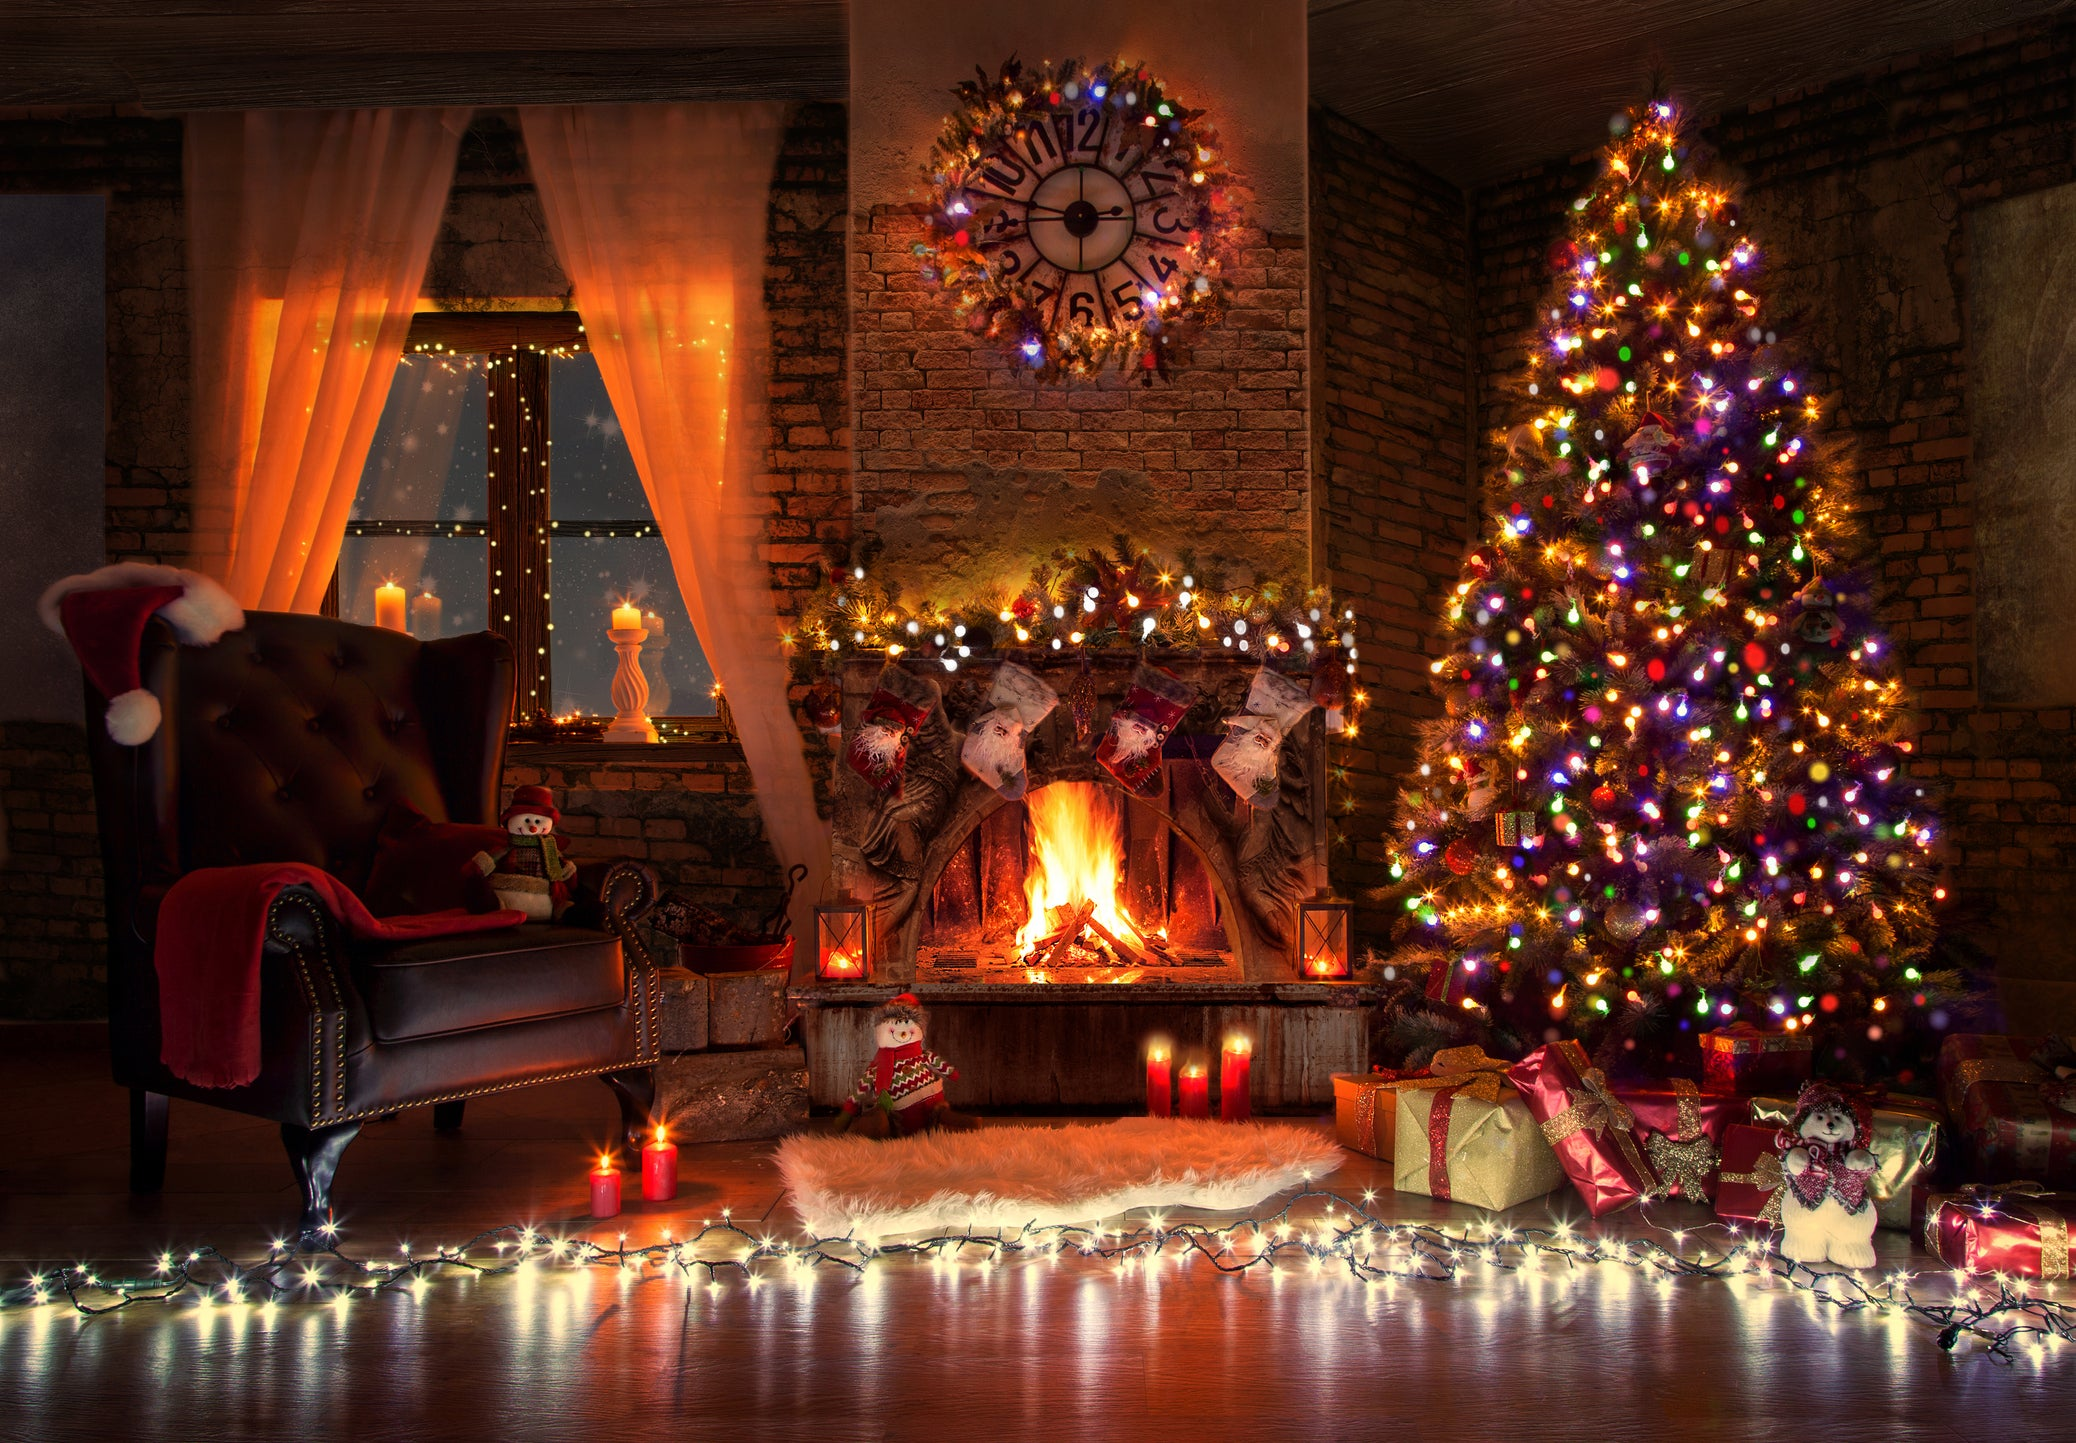 10 best Christmas decor items to spruce up your home this holiday